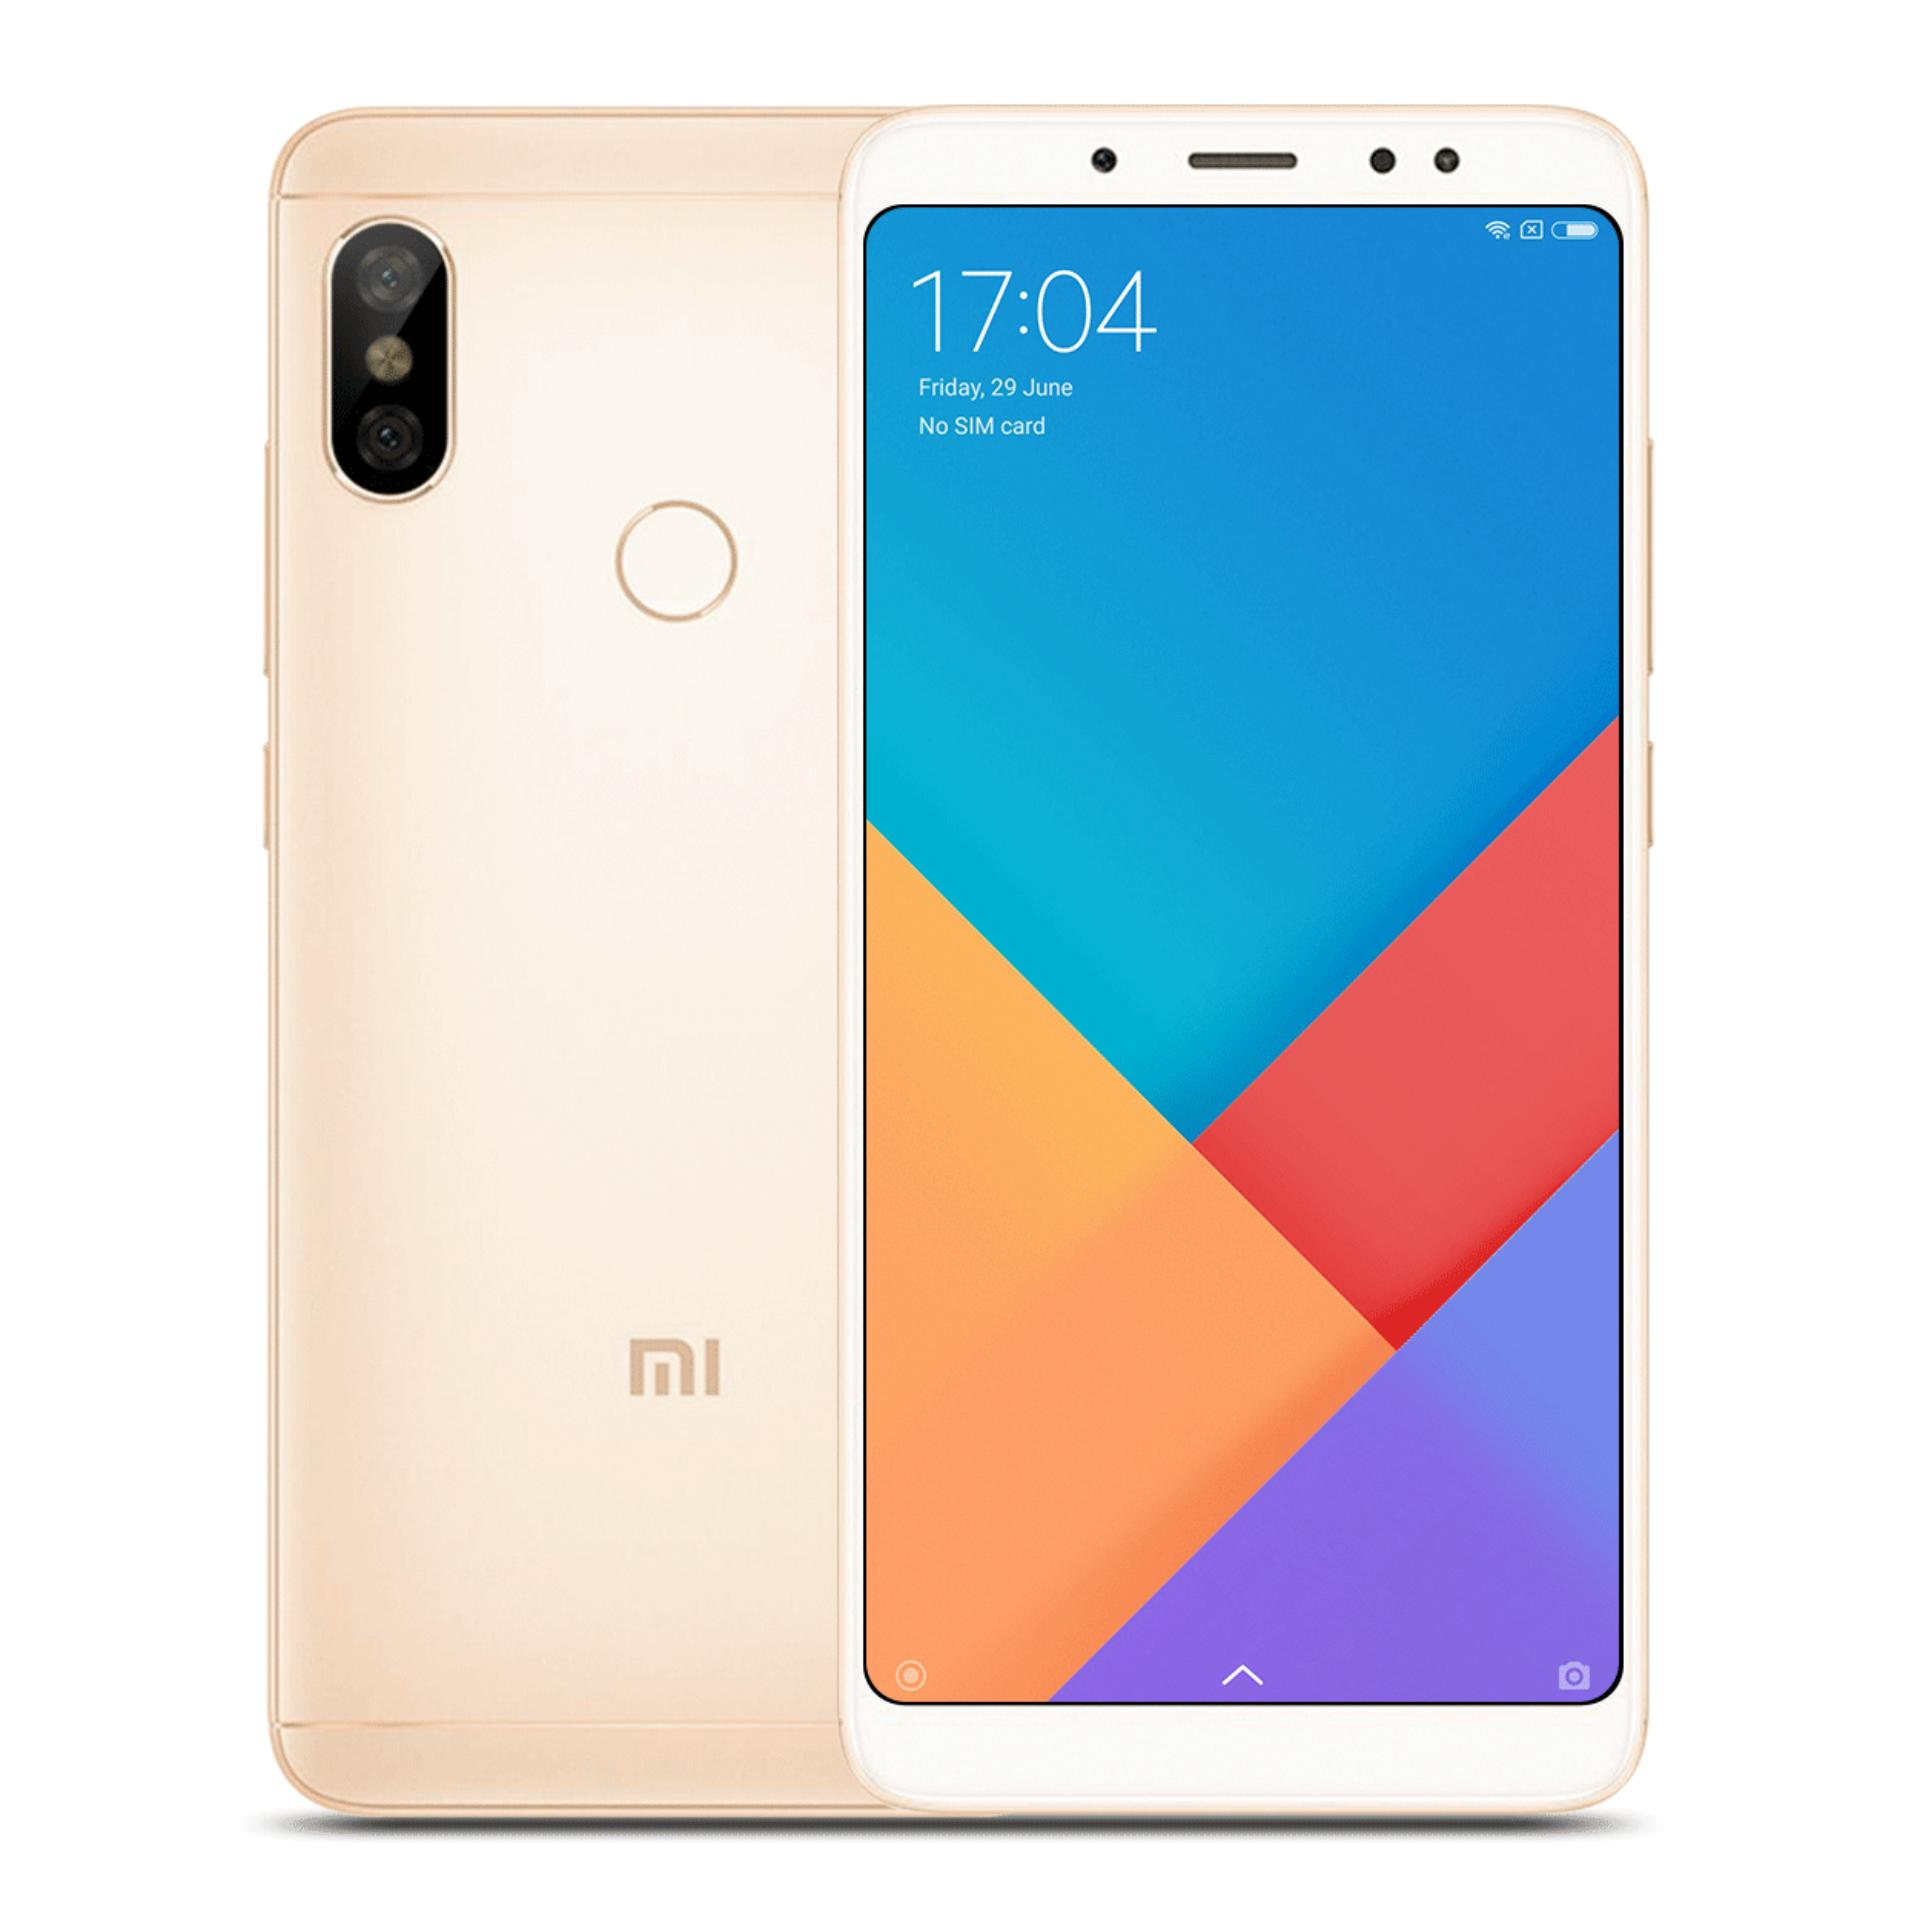 Harga Xiaomi Redmi Note 4x Lazada Gold 4 64gb 5 4gb Ram Rom Cheap Phone Products For Philippines